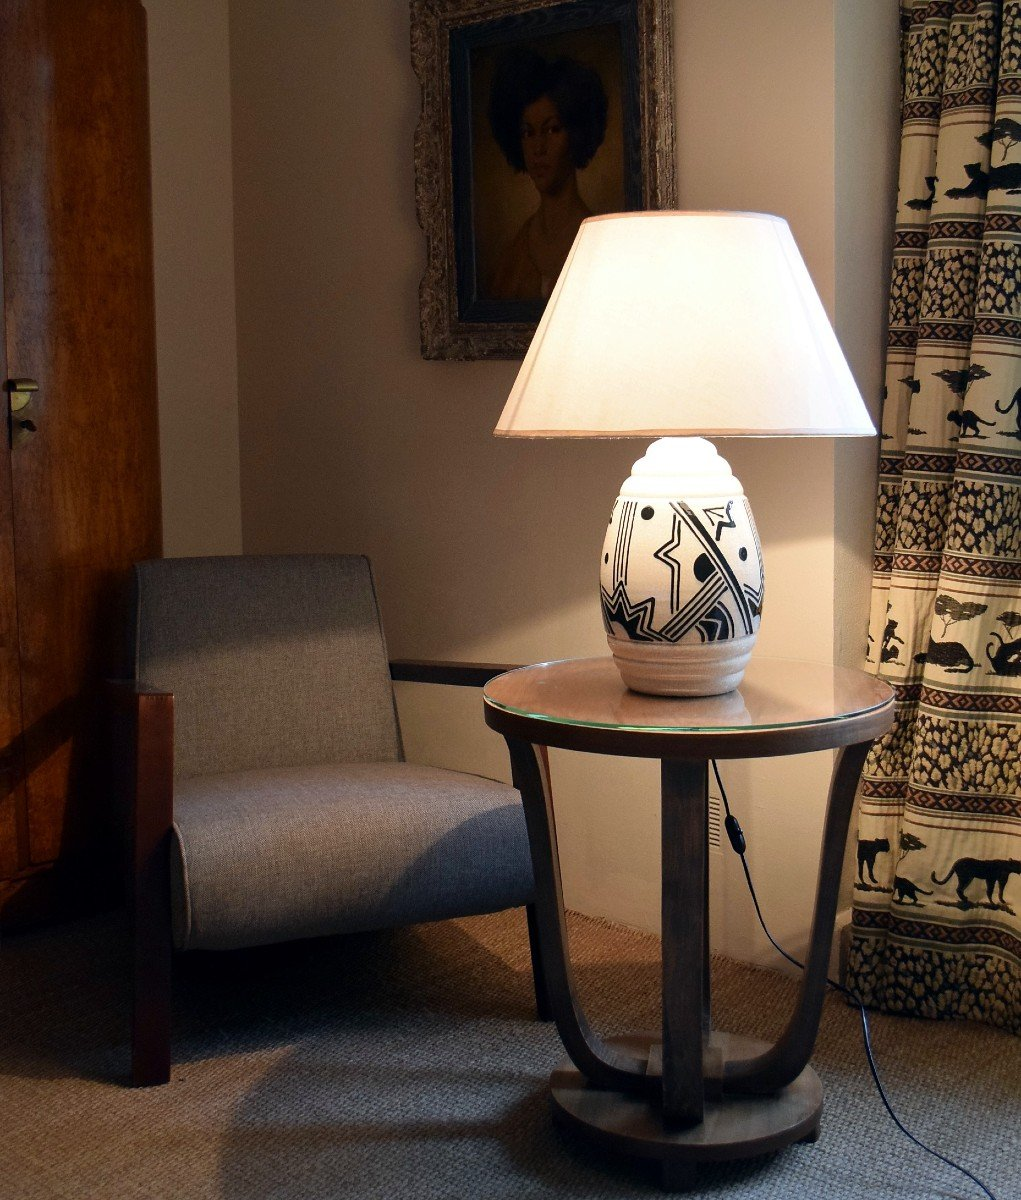 Large Africanist Art Deco Lamp In Cracked Earthenware-photo-4